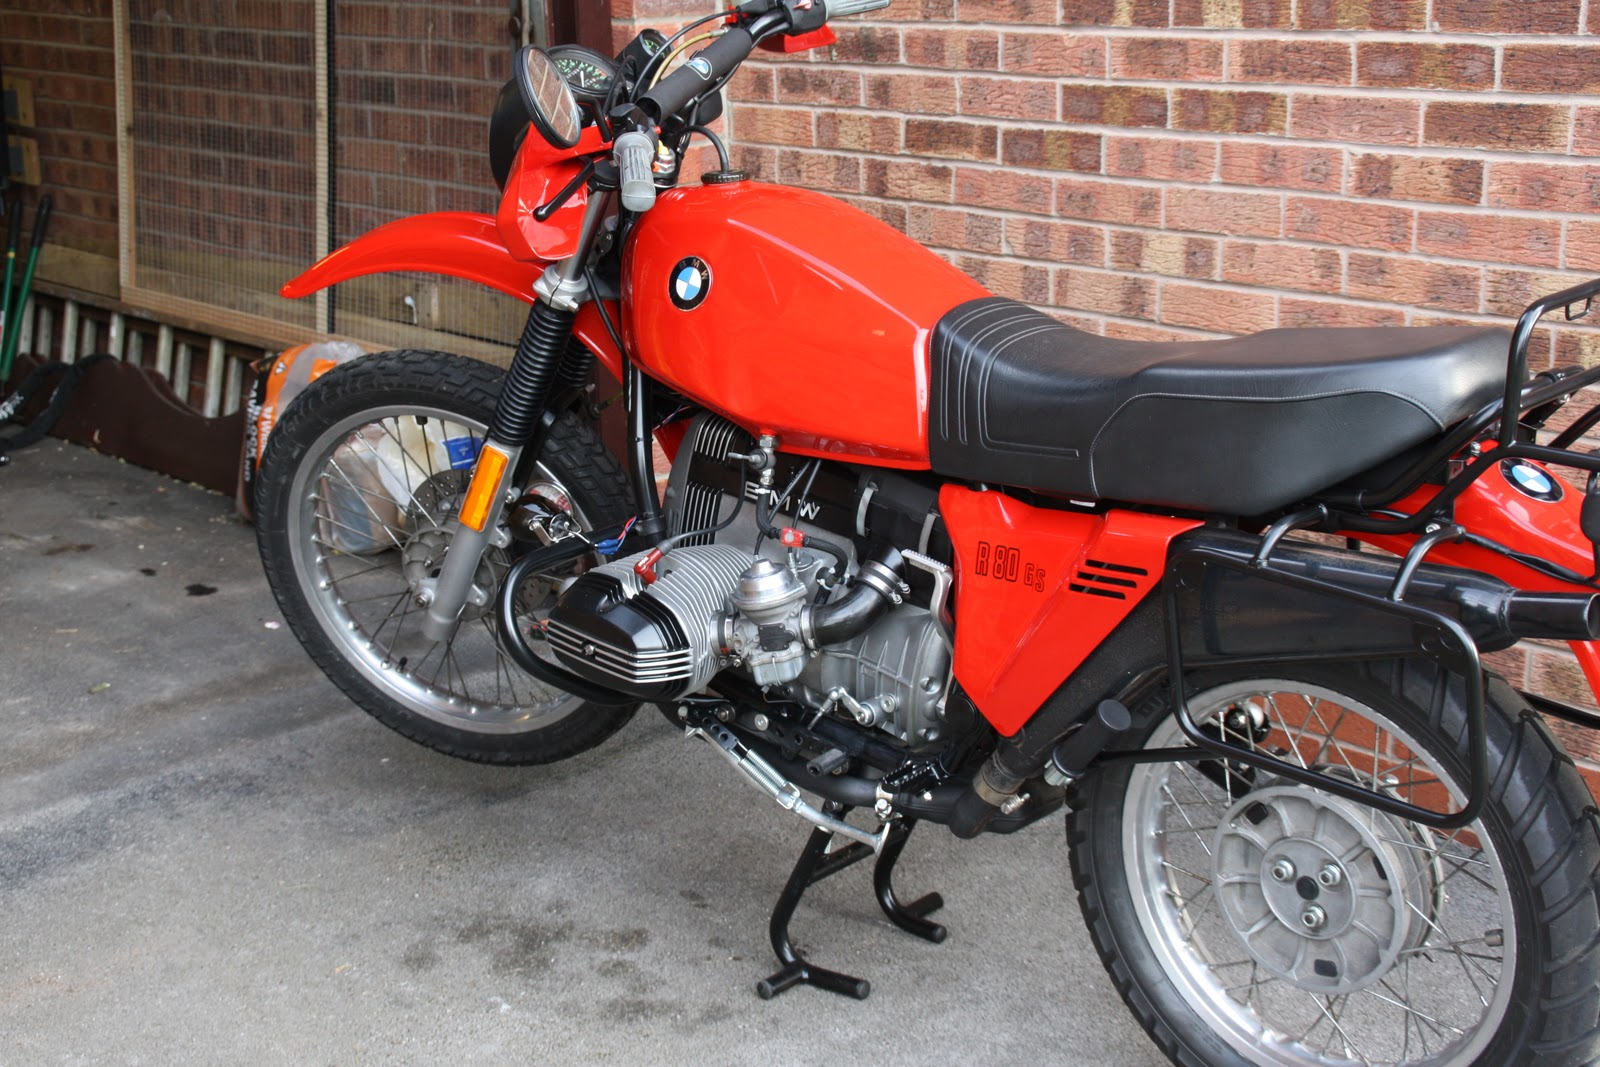 BMW R80GS 1989 images #6015